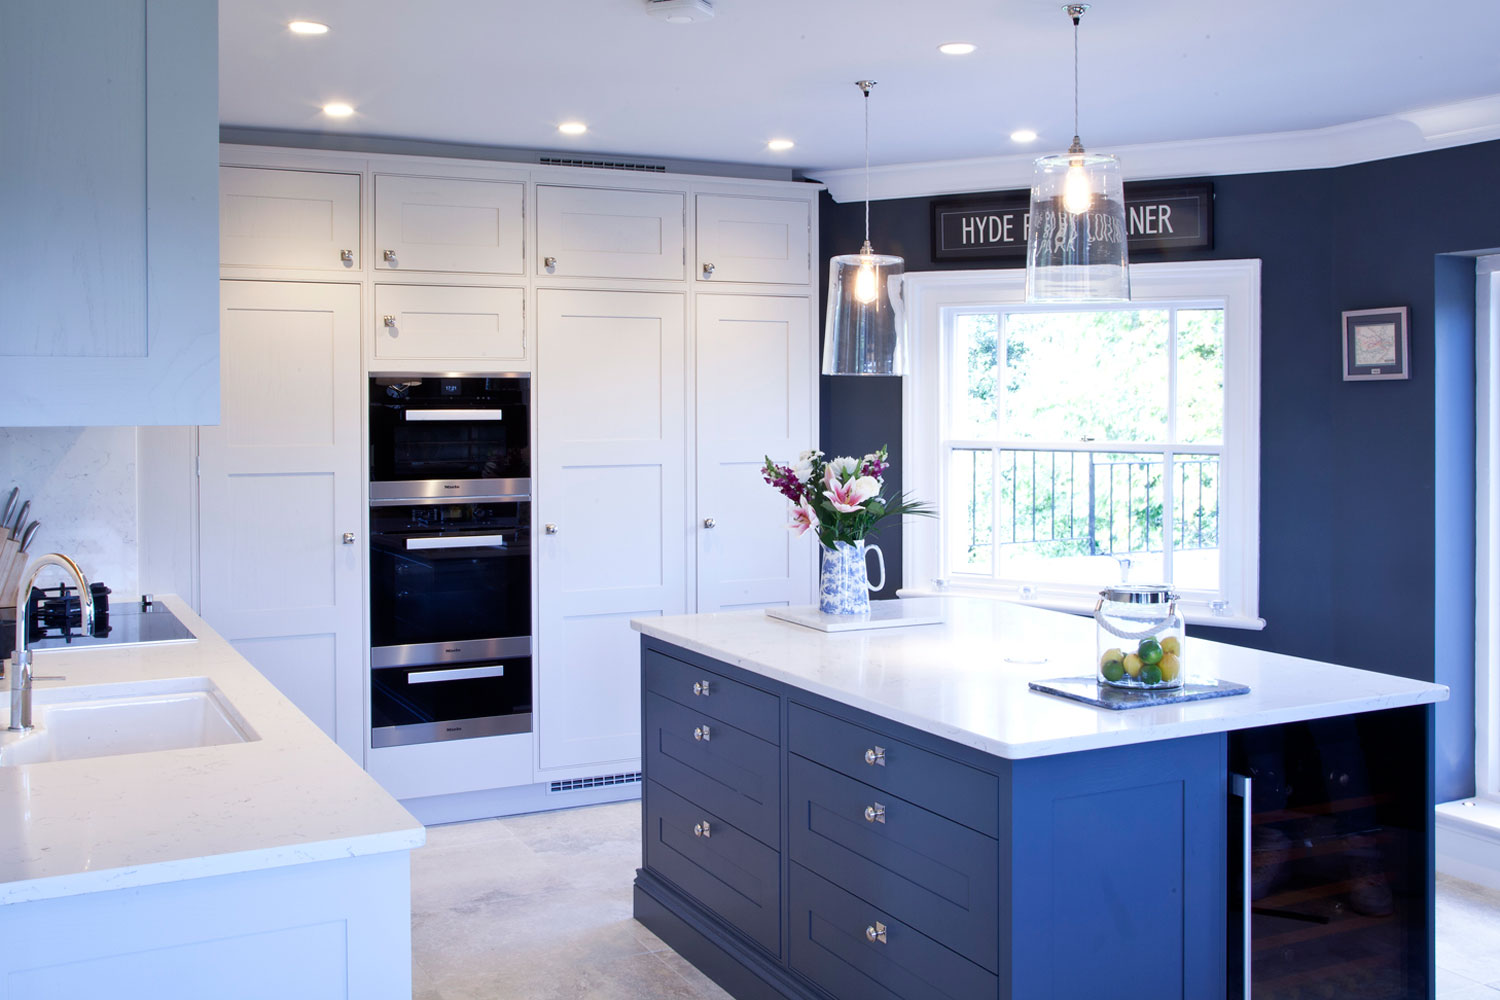 Shaker Kitchen Doors And Flat Kitchen Doors Definitions And